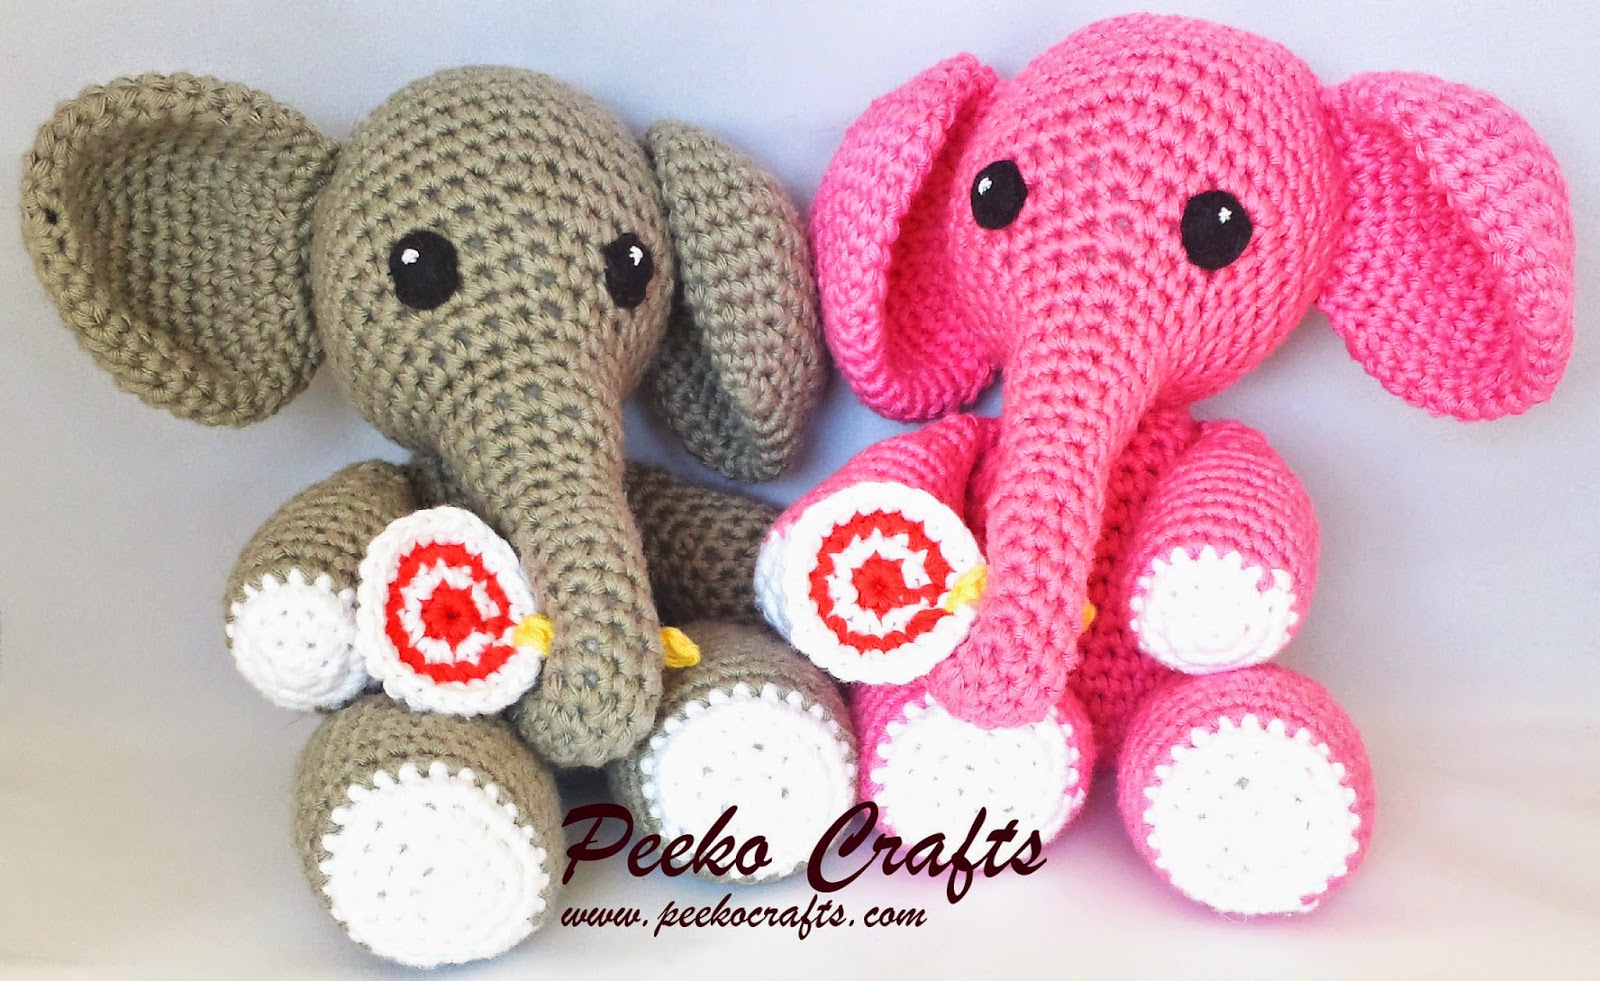 peekocrafts, kitted toys, knitting ideas